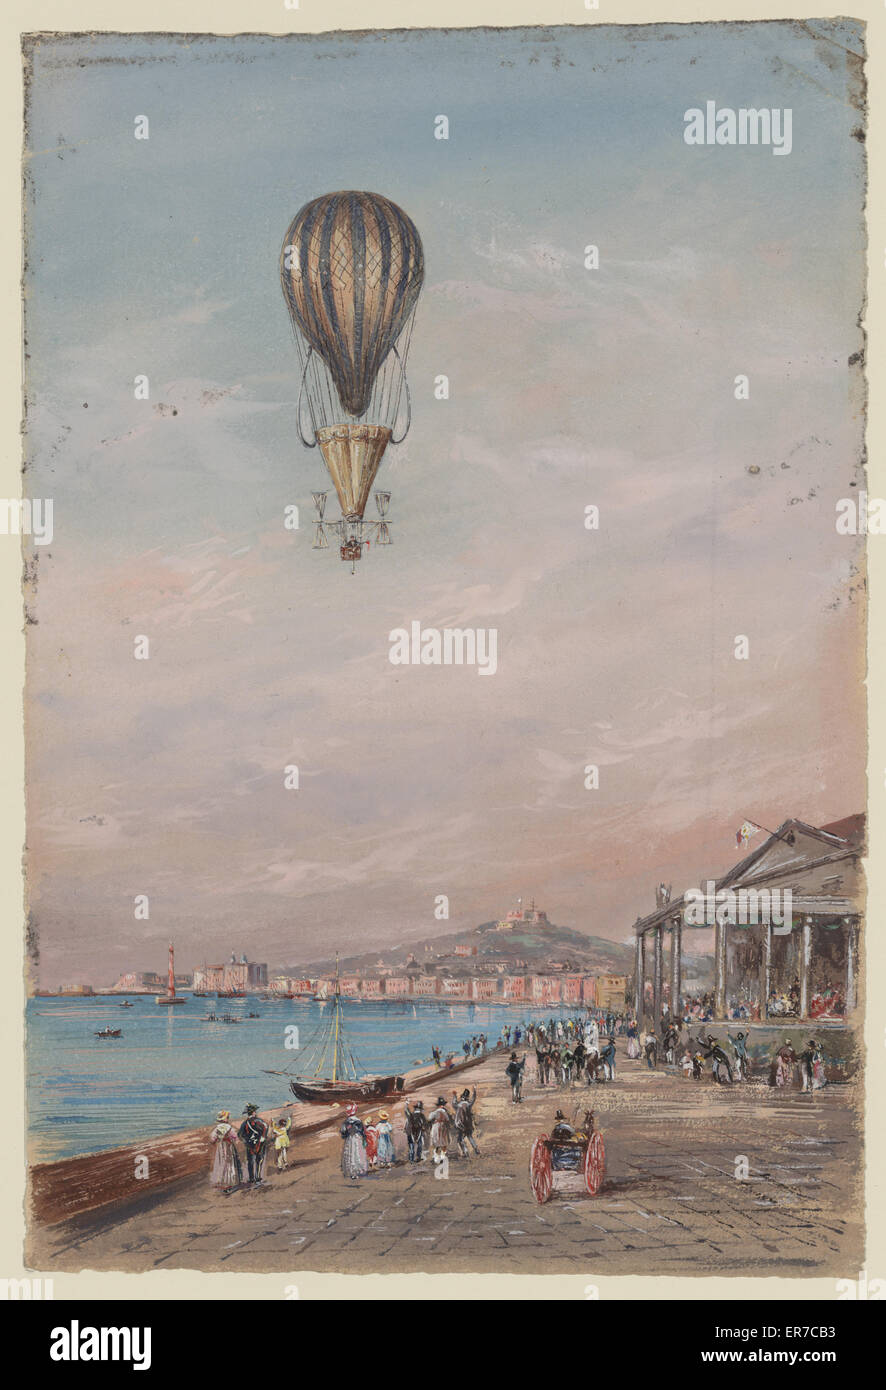 Balloon with parachute and propellers, associated with Francesco Orlandi, flying over a town harbor and spectators, Stock Photo